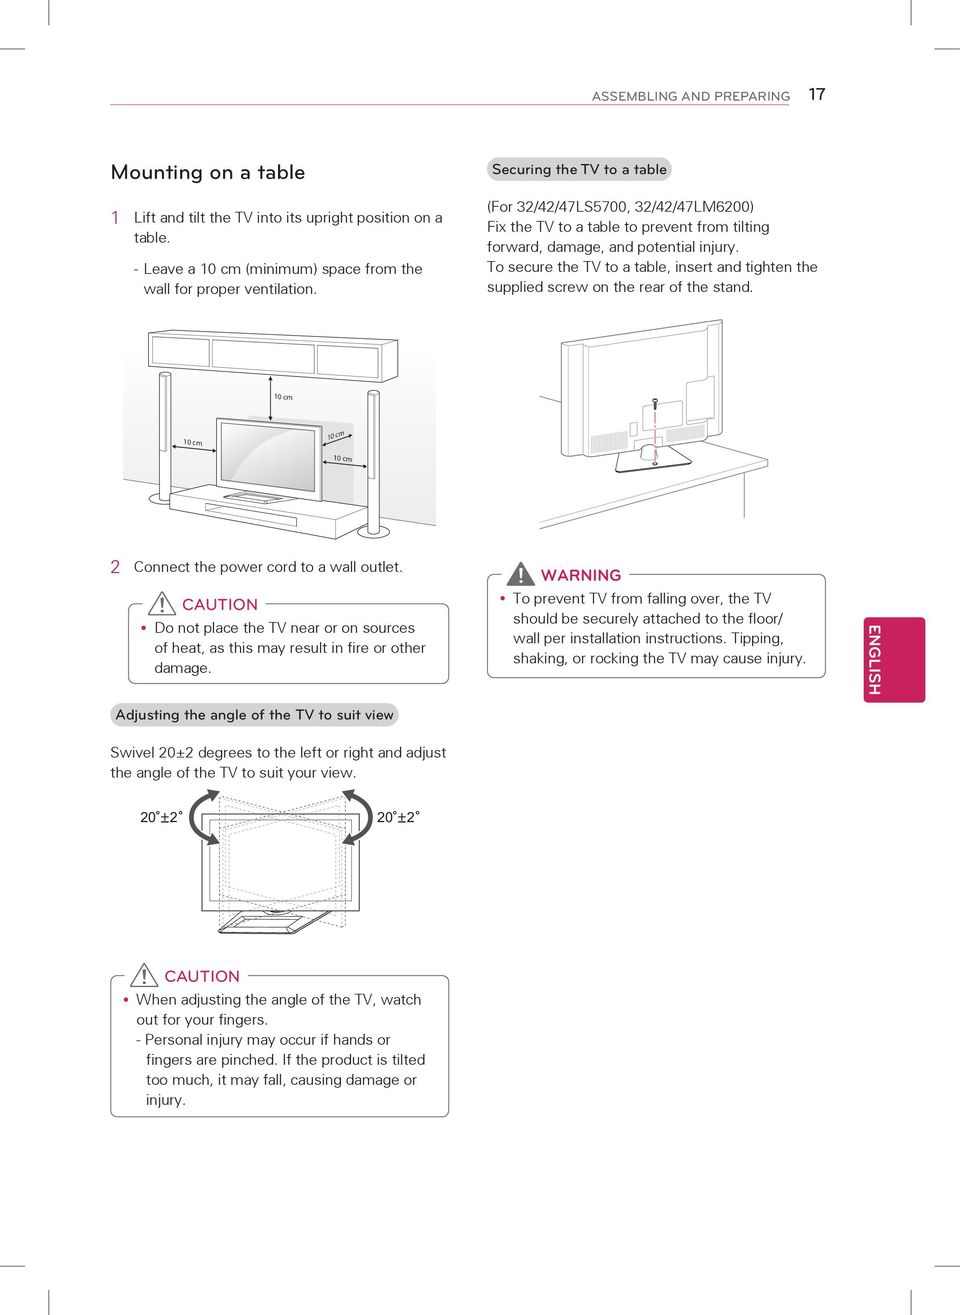 To secure the TV to a table, insert and tighten the supplied screw on the rear of the stand. 10 cm 10 cm 10 cm 10 cm 2 Connect the power cord to a wall outlet.